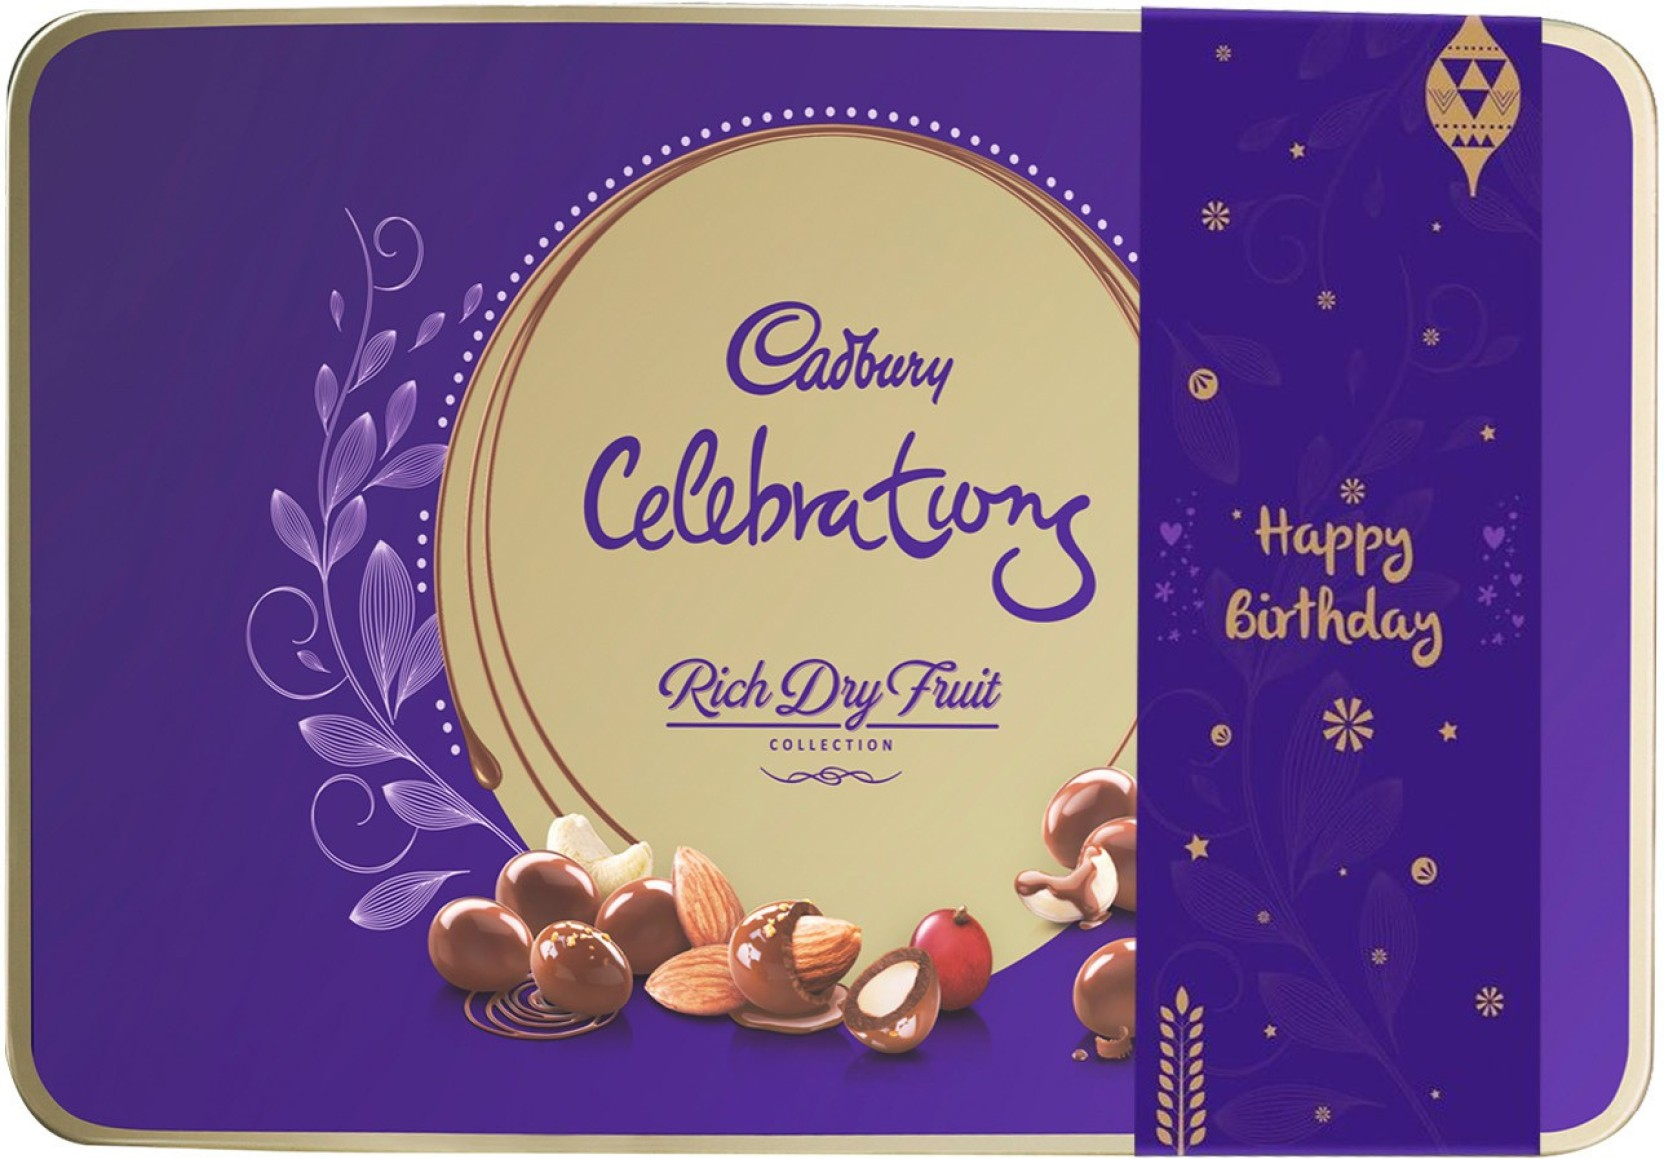 Cadbury Celebrations Rich Dry Fruit Chocolate Happy Birthday Gift Pack 177 Gm Brittles G